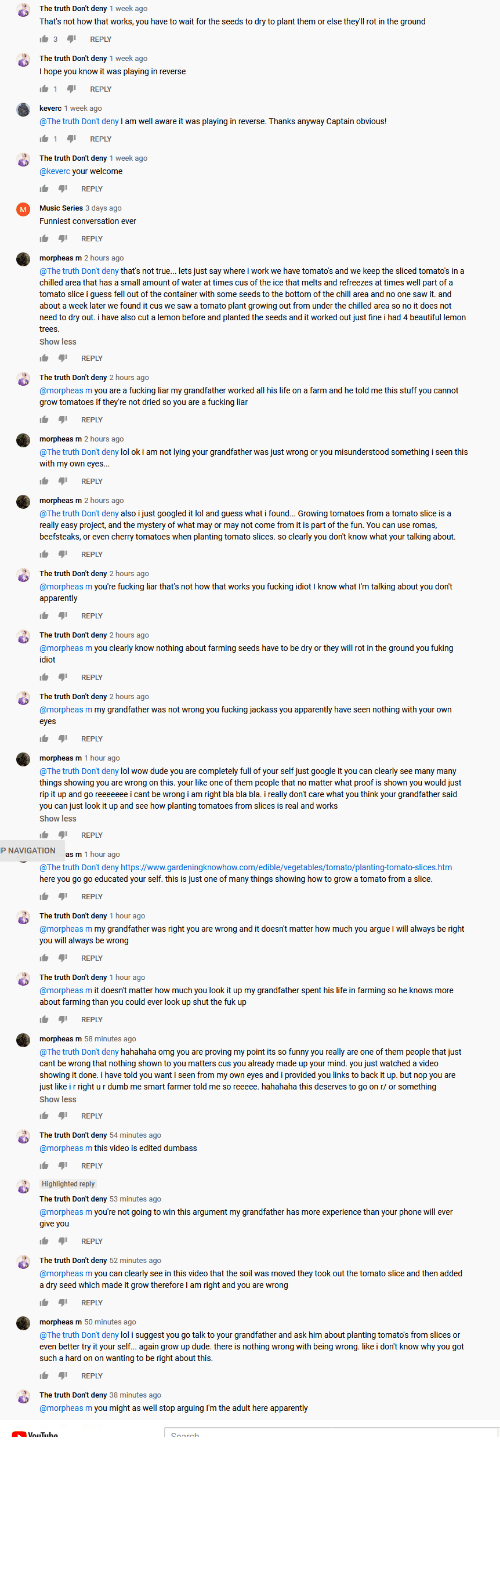 """Tube: me vs """"the truth don't deny"""" on a you tube video. he just cant be wrong."""